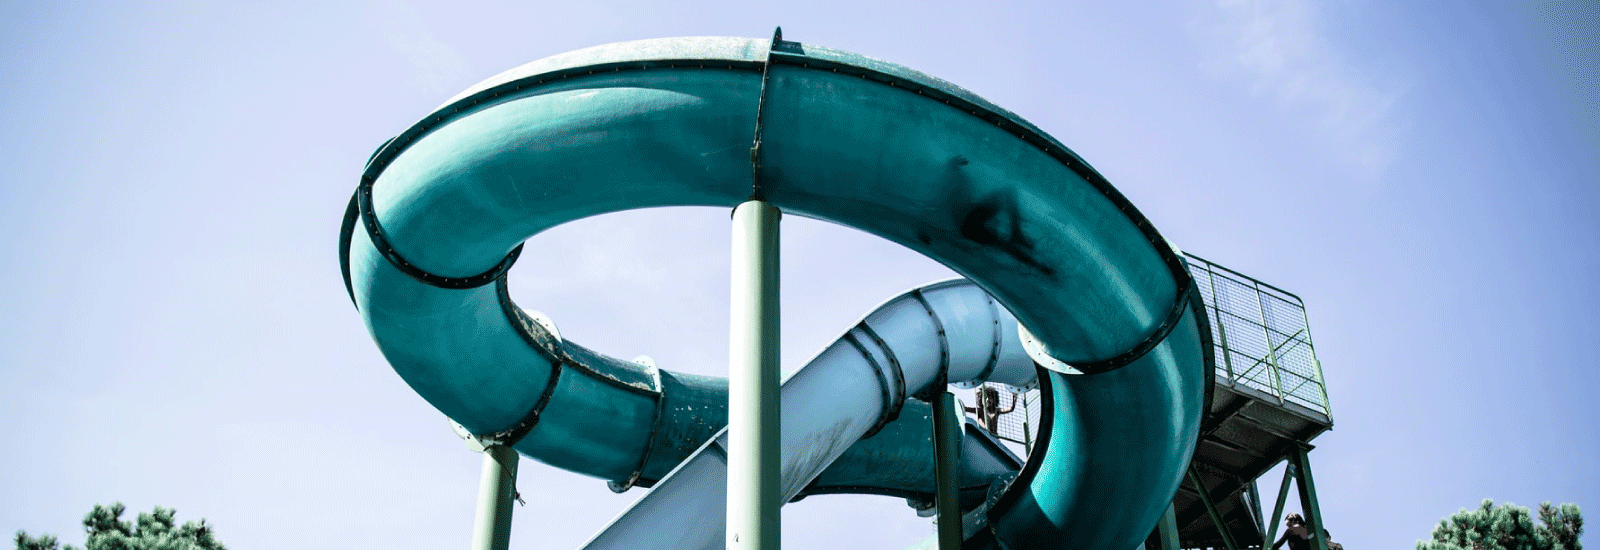 DryTown Water Park, Palmdale, CA